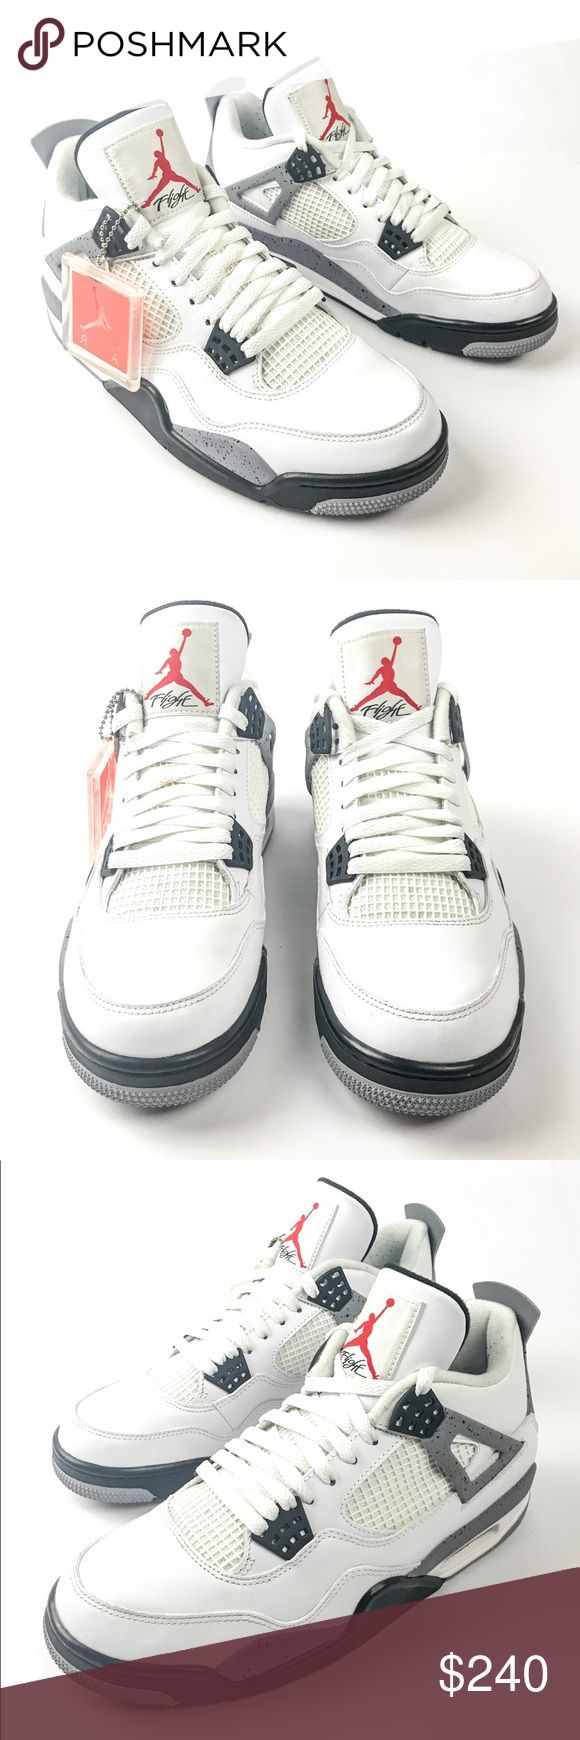 Air Jordan Retro 4 - White Cement (2012) Air Jordan Retro IV (4) White Cement (2012) Condition: 9/10 Minor Scuff/Wear & Tear (see pictures) Size: 9 US / 8 UK Color: Cement Shipping: US Only  Price: $230 (or Best Offer) Trades: Authentic equivalent value (i.e. BAPE, Adidas, Supreme, Yeezy, Palace, Retro Jordan etc.)  Comes with OG Box Ships out same day if purchased before Noon 100% Authentic Guaranteed  All pictures are of actual shoe  IG: @WelcomeReject See closet for similar listings  ALL…